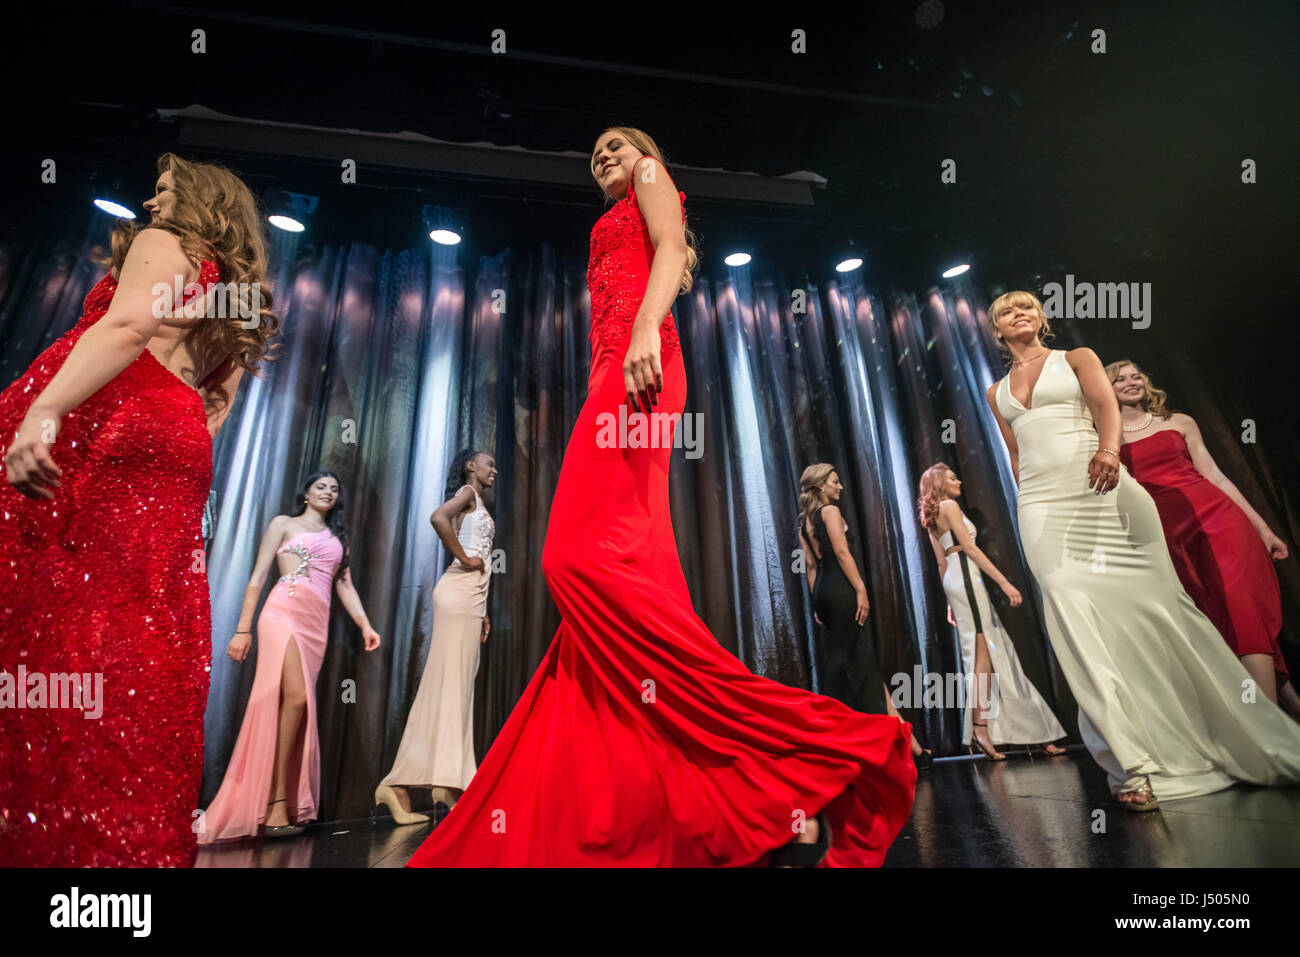 London, UK. 12th May, 2017. Sophie Walker (centre) competes at Miss London 2017 Finale © Guy Corbishley/Alamy Live Stock Photo